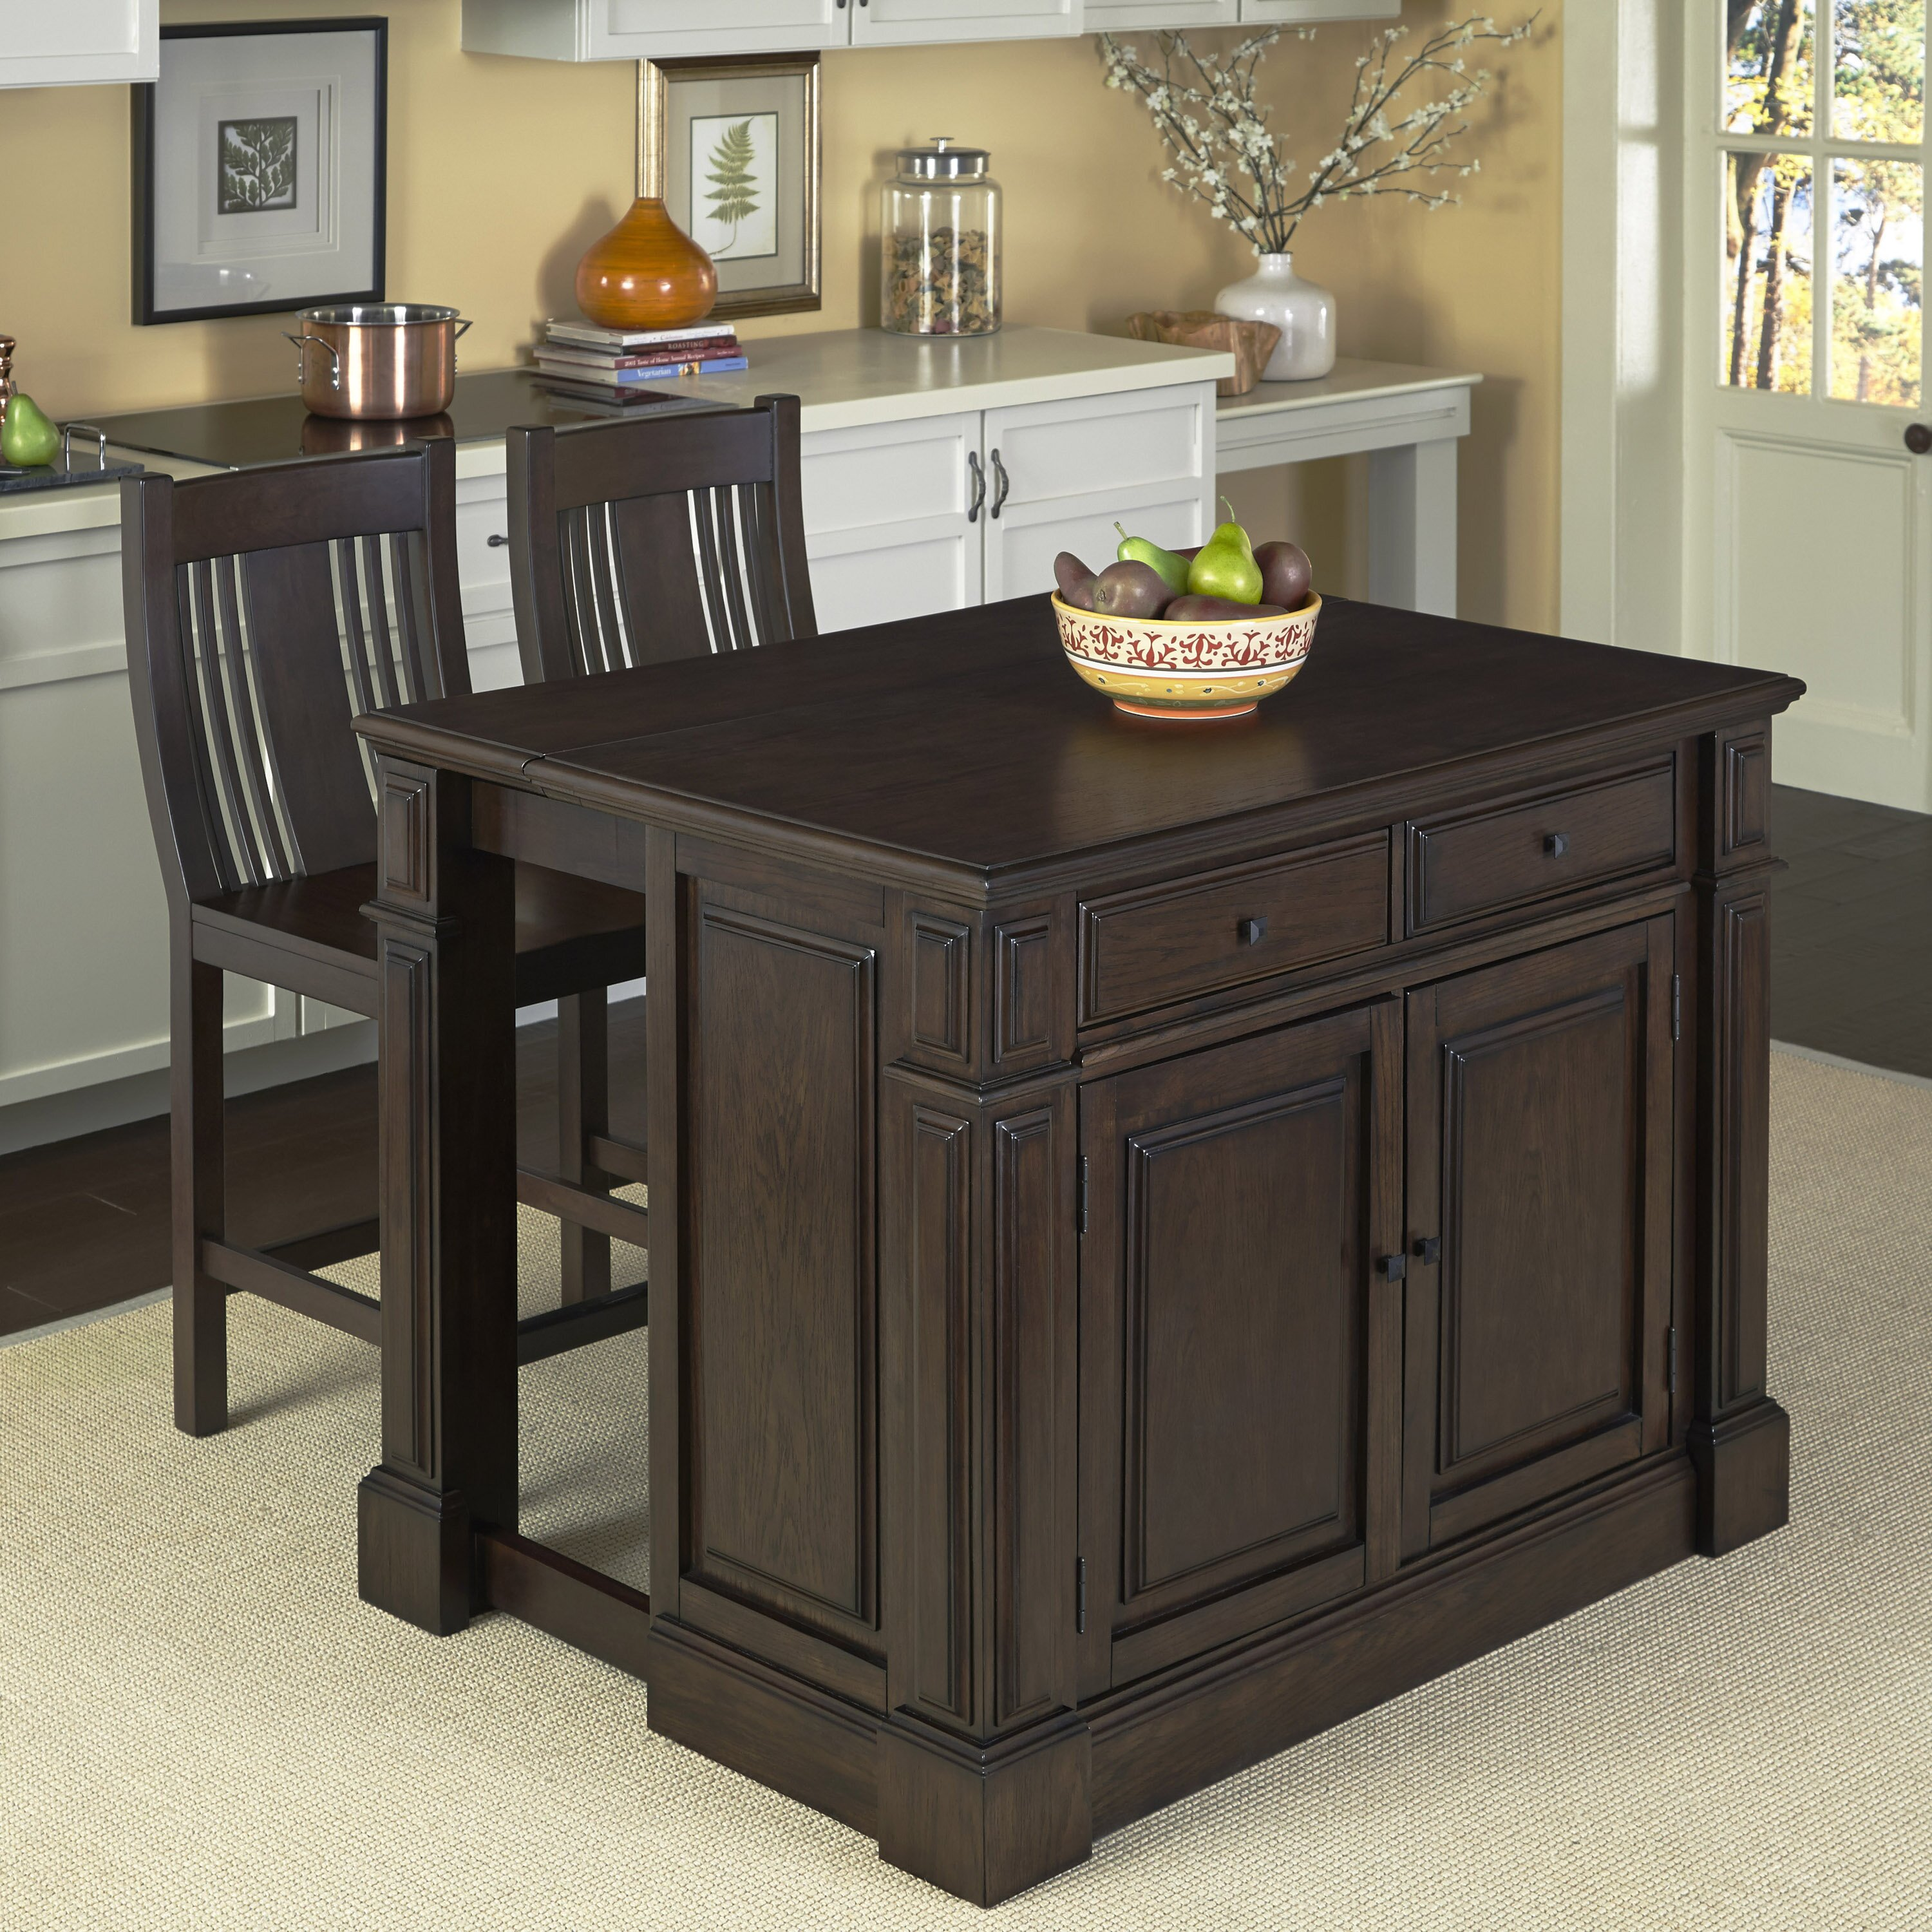 Home Styles Prairie Home 3 Piece Kitchen Island Set Reviews Wayfair